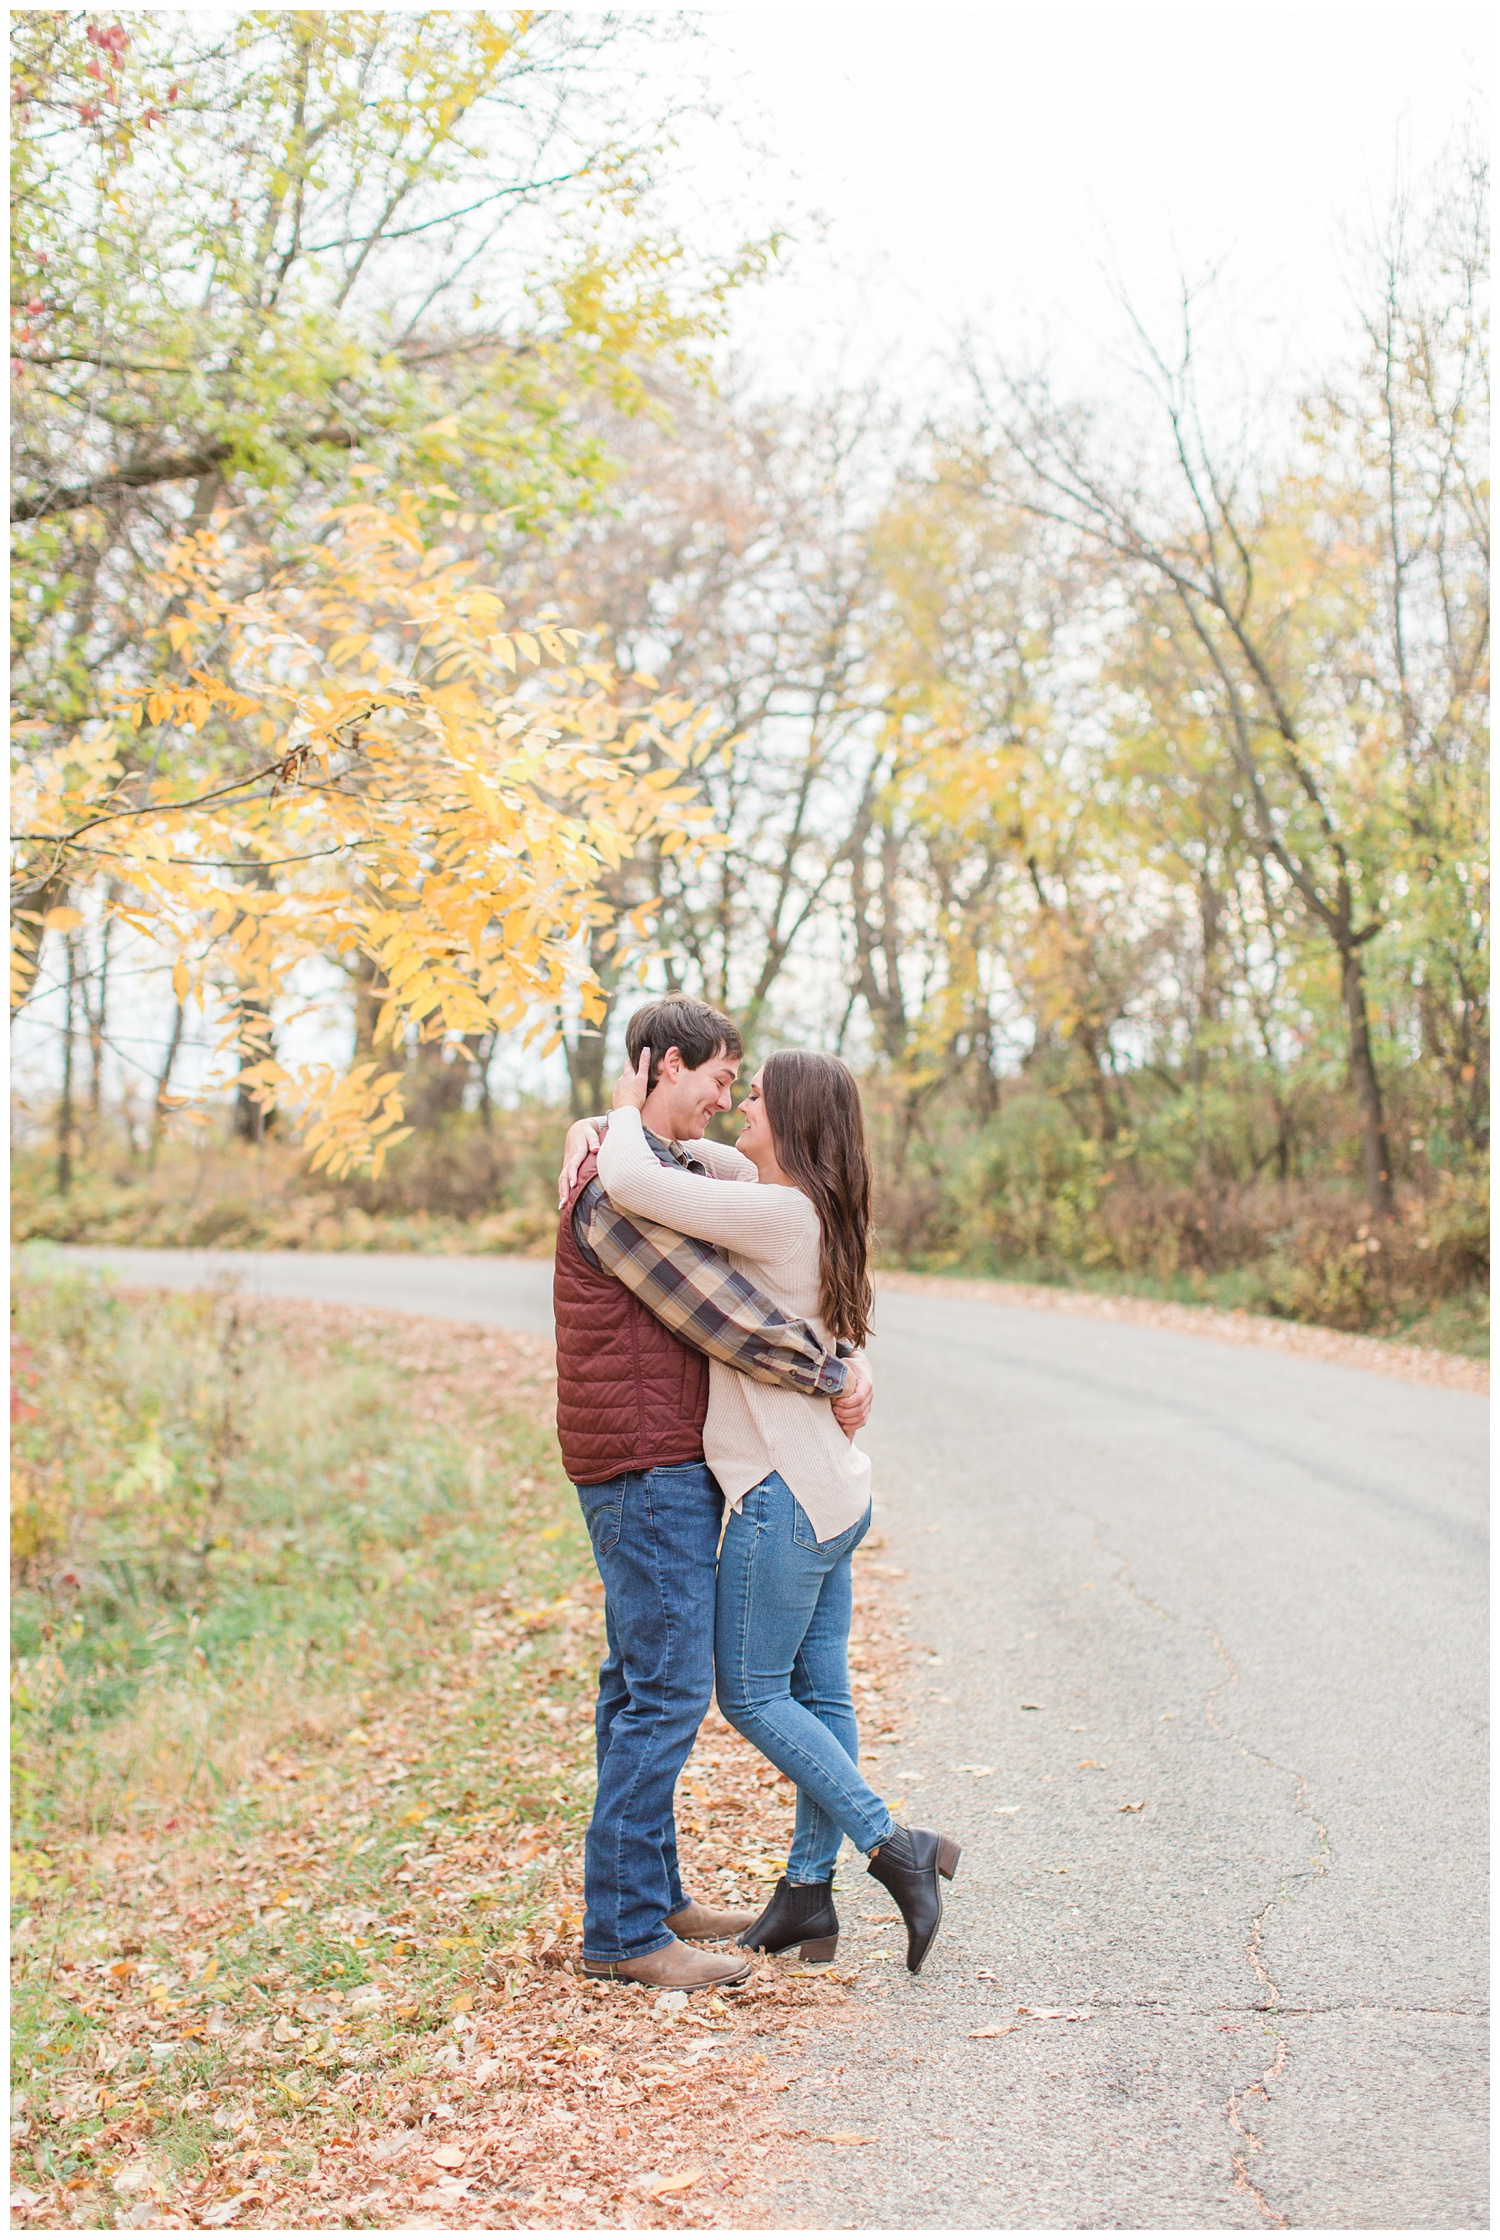 Fall in Iowa, Jenna embraces Brady in the middle of an autumn path at Lost Island Nature Center | CB Studio